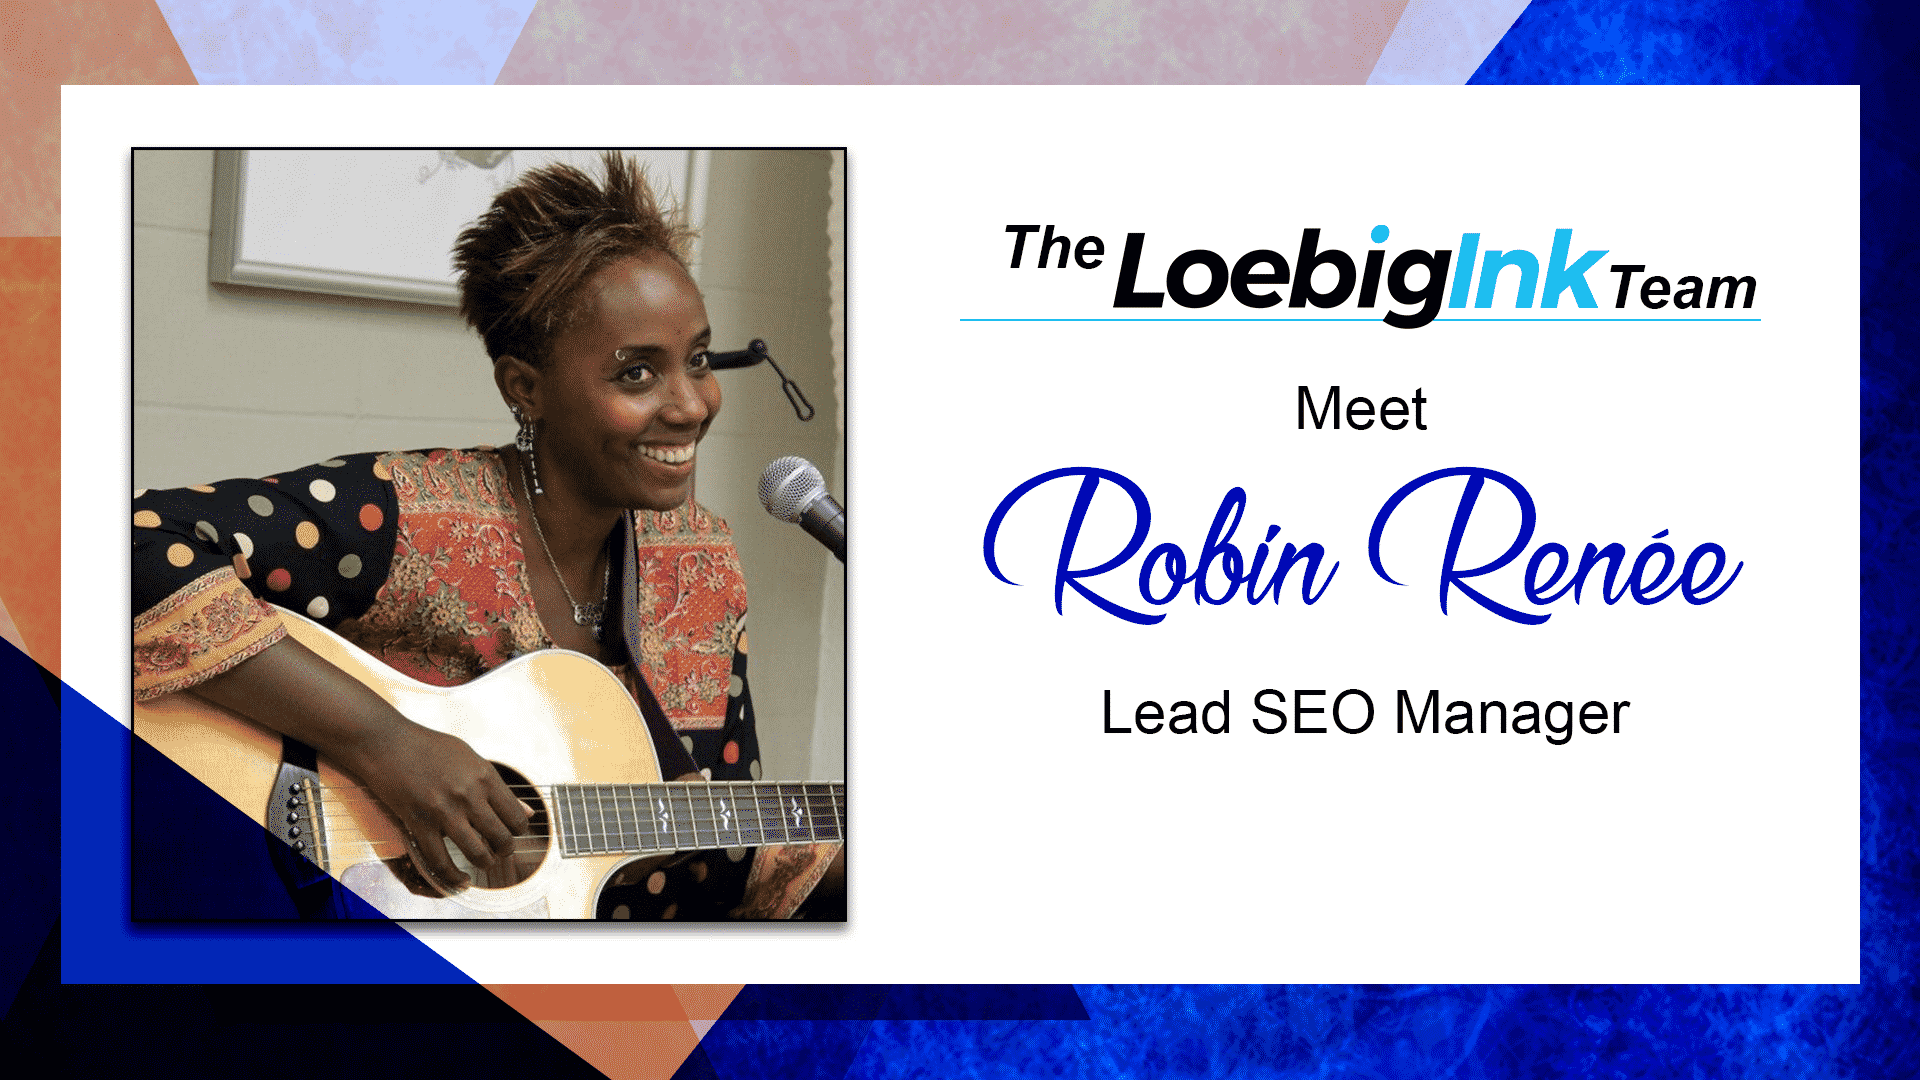 The Loebig Ink Team - Meet Robin Renée, Lead SEO Manager